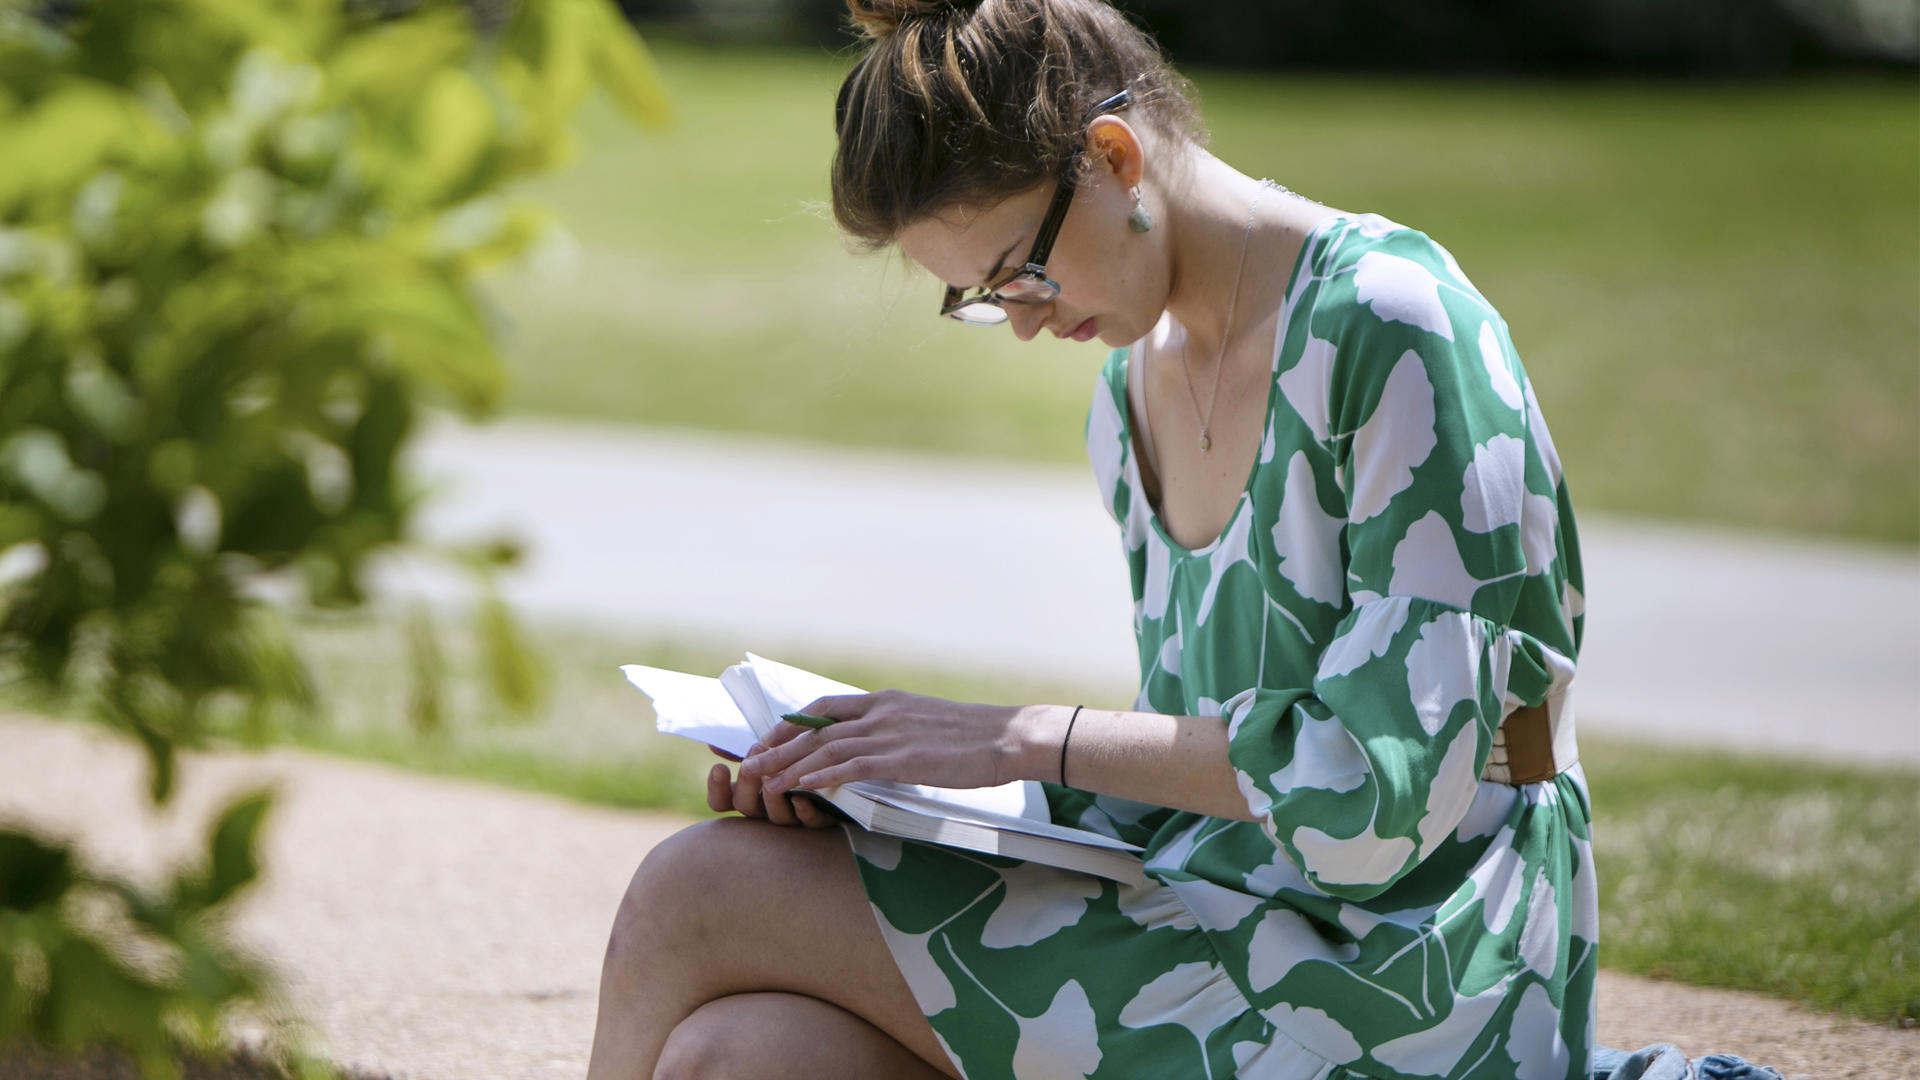 A woman in a green and white dress sits on a concrete wall, reading